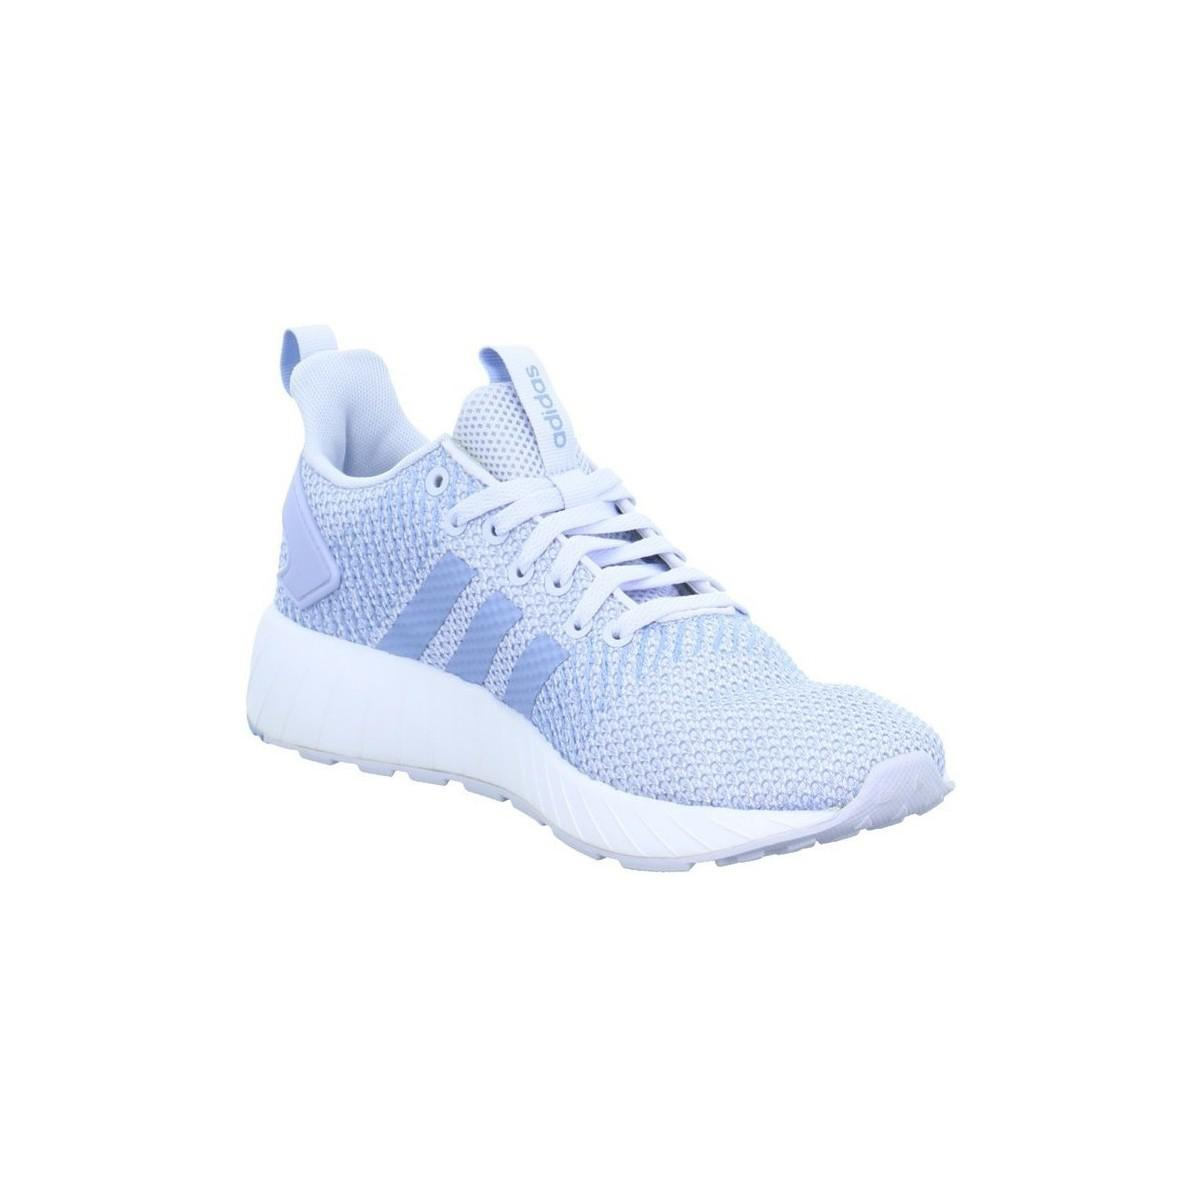 Lyst Adidas Men's Questar Byd W Men's Adidas Shoes (trainers) In Blue in Blue 0d76a2